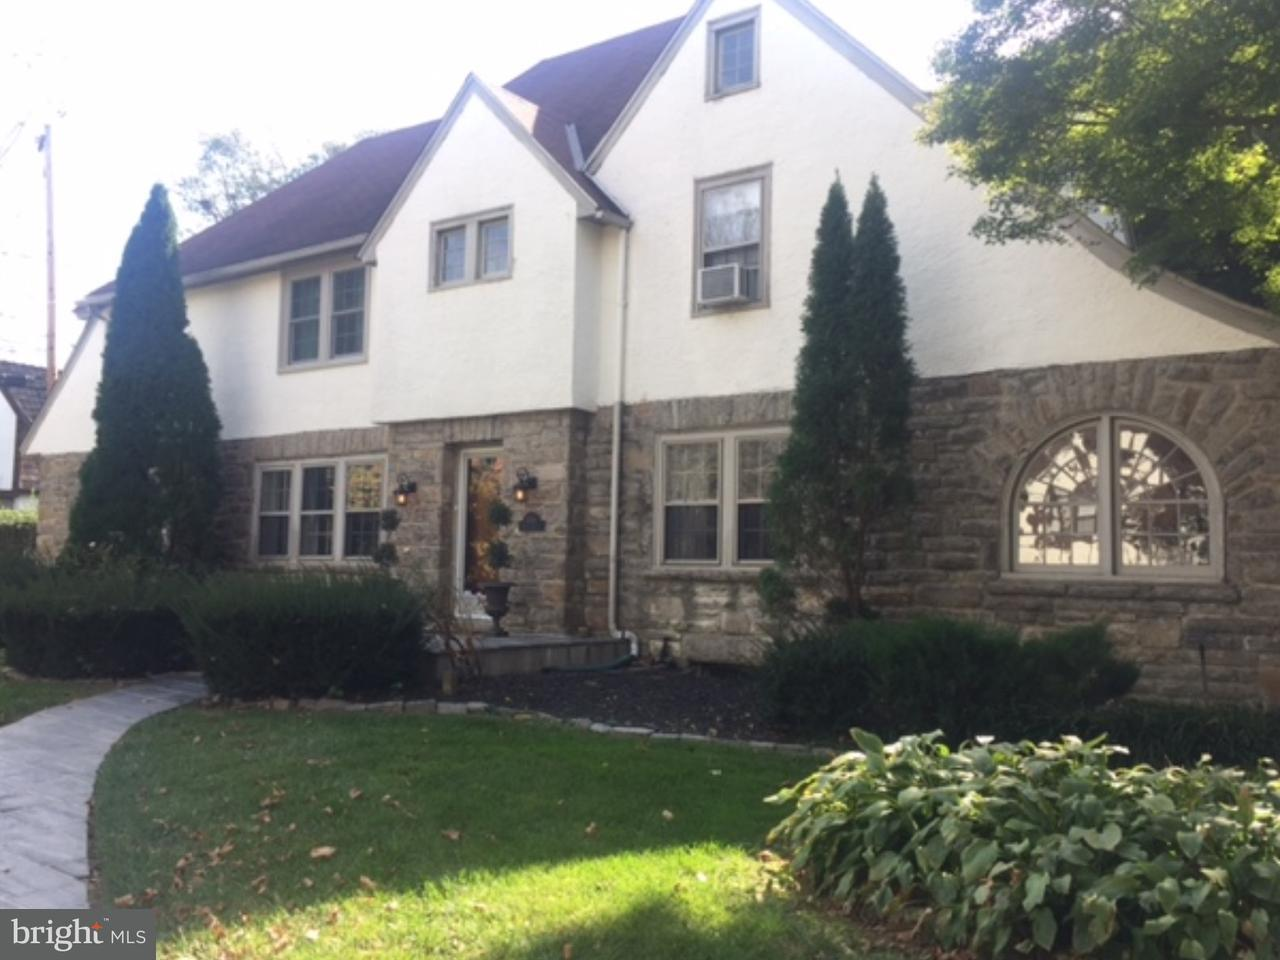 4506  Marvine Drexel Hill, PA 19026